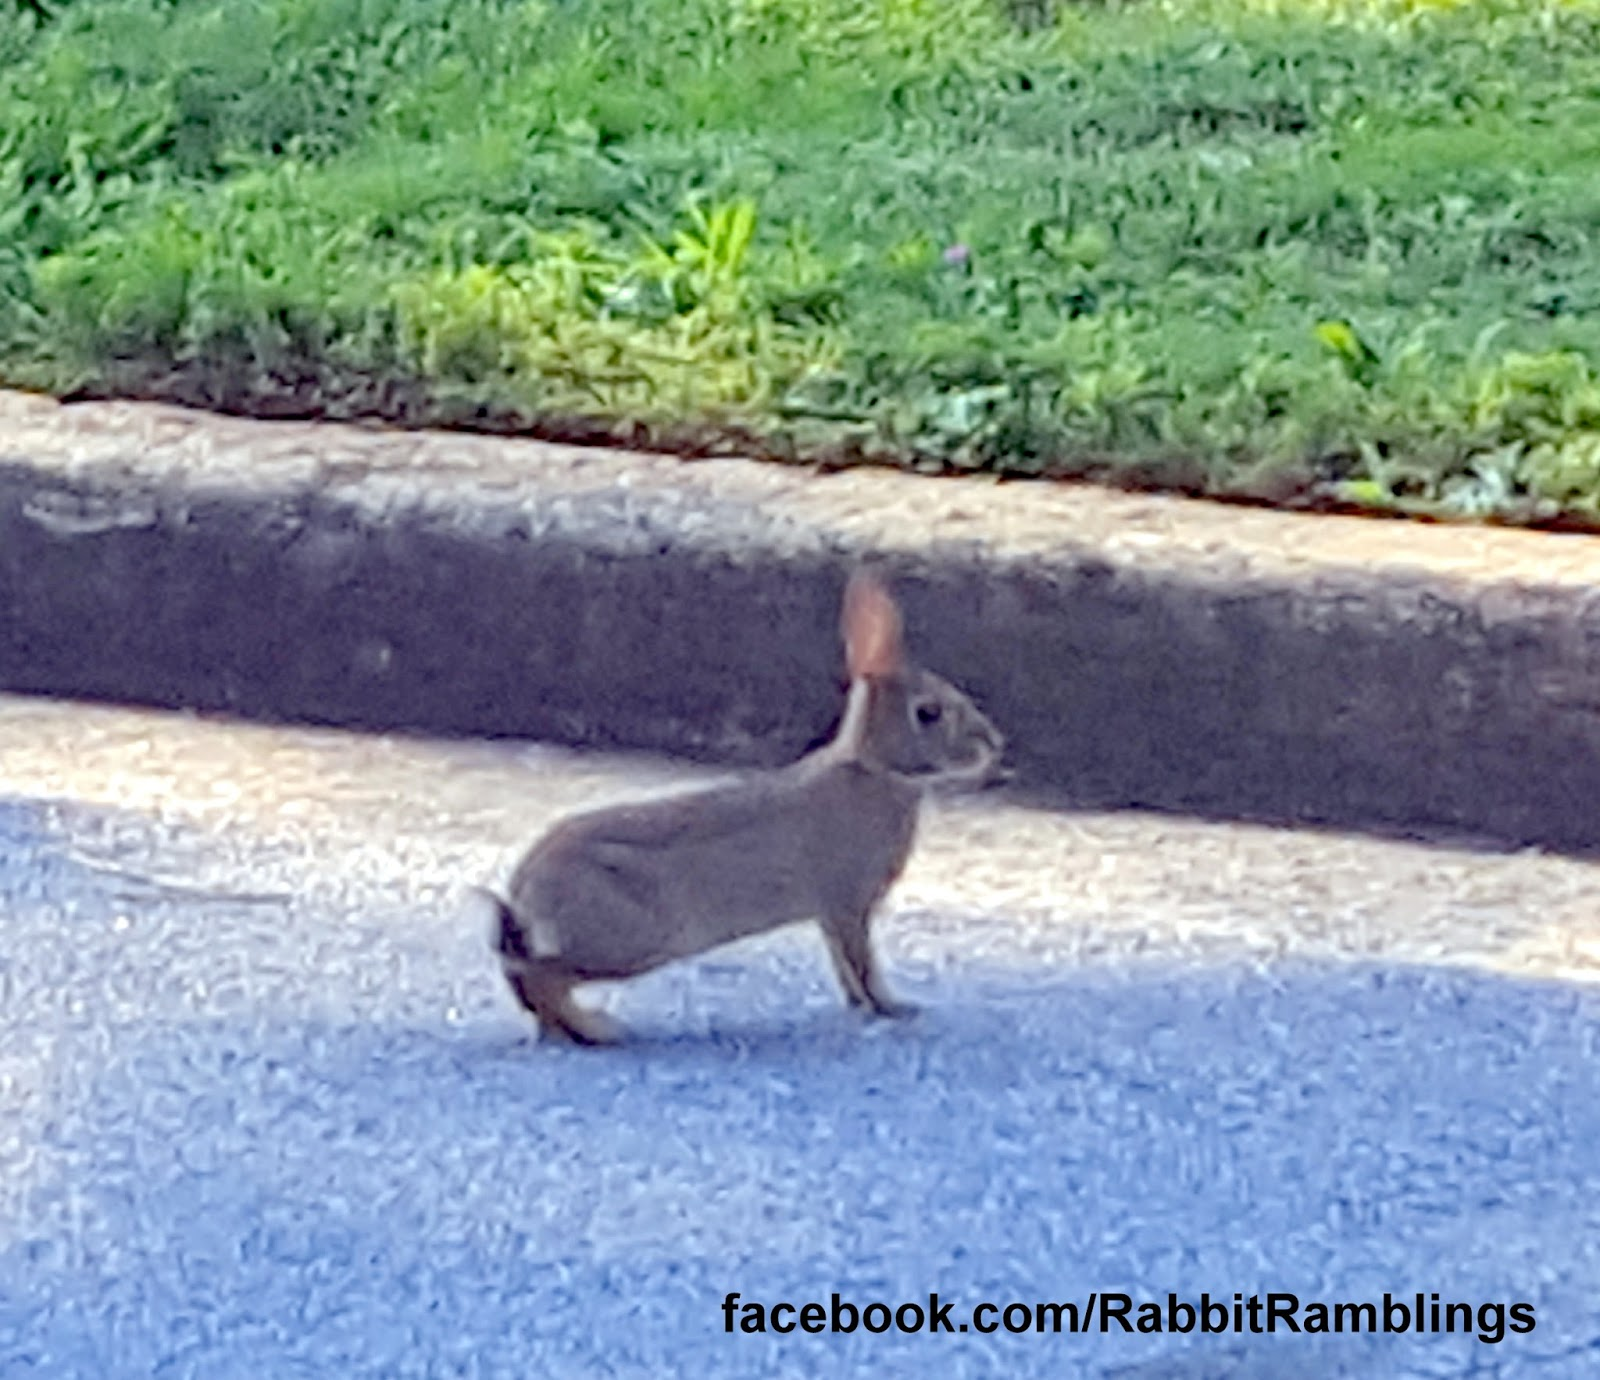 Spotted The Bunny In A Neighbor's Lawn Got Too Close And It Bolted Across  The Street To Our Lawn